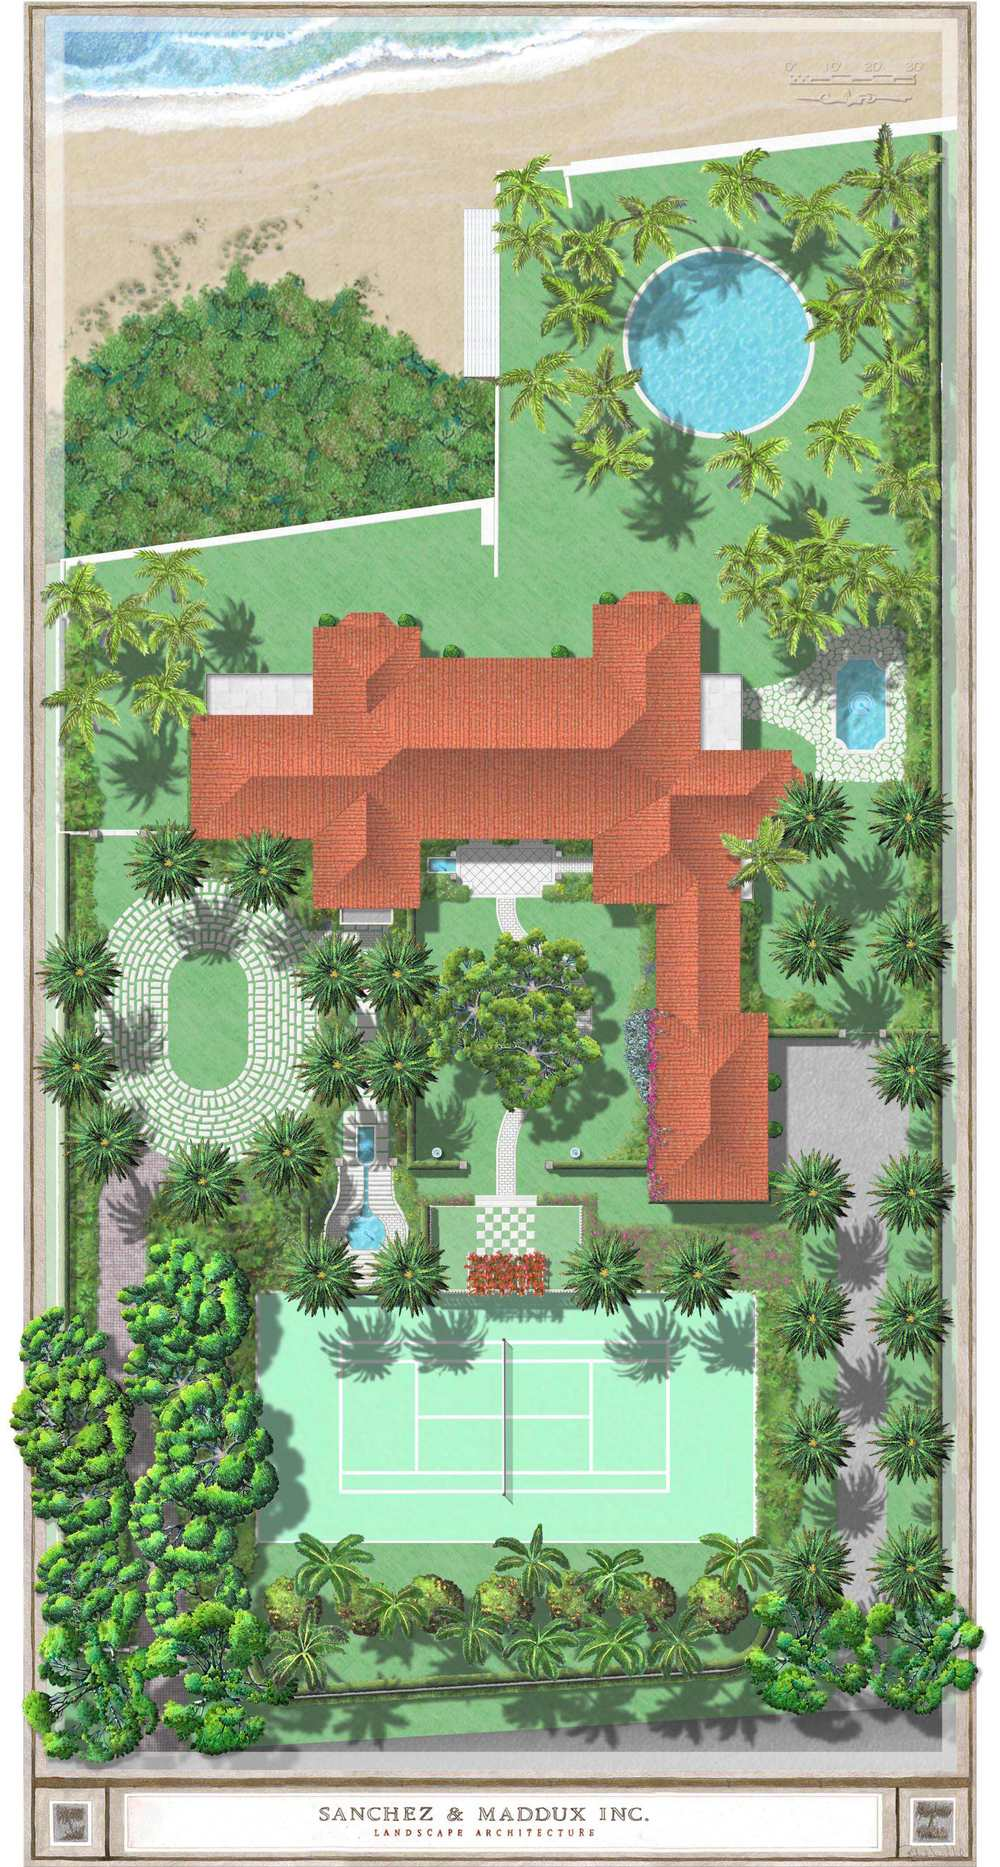 New House,  Palm Beach, FL  Site Plan by Sanchez & Maddux